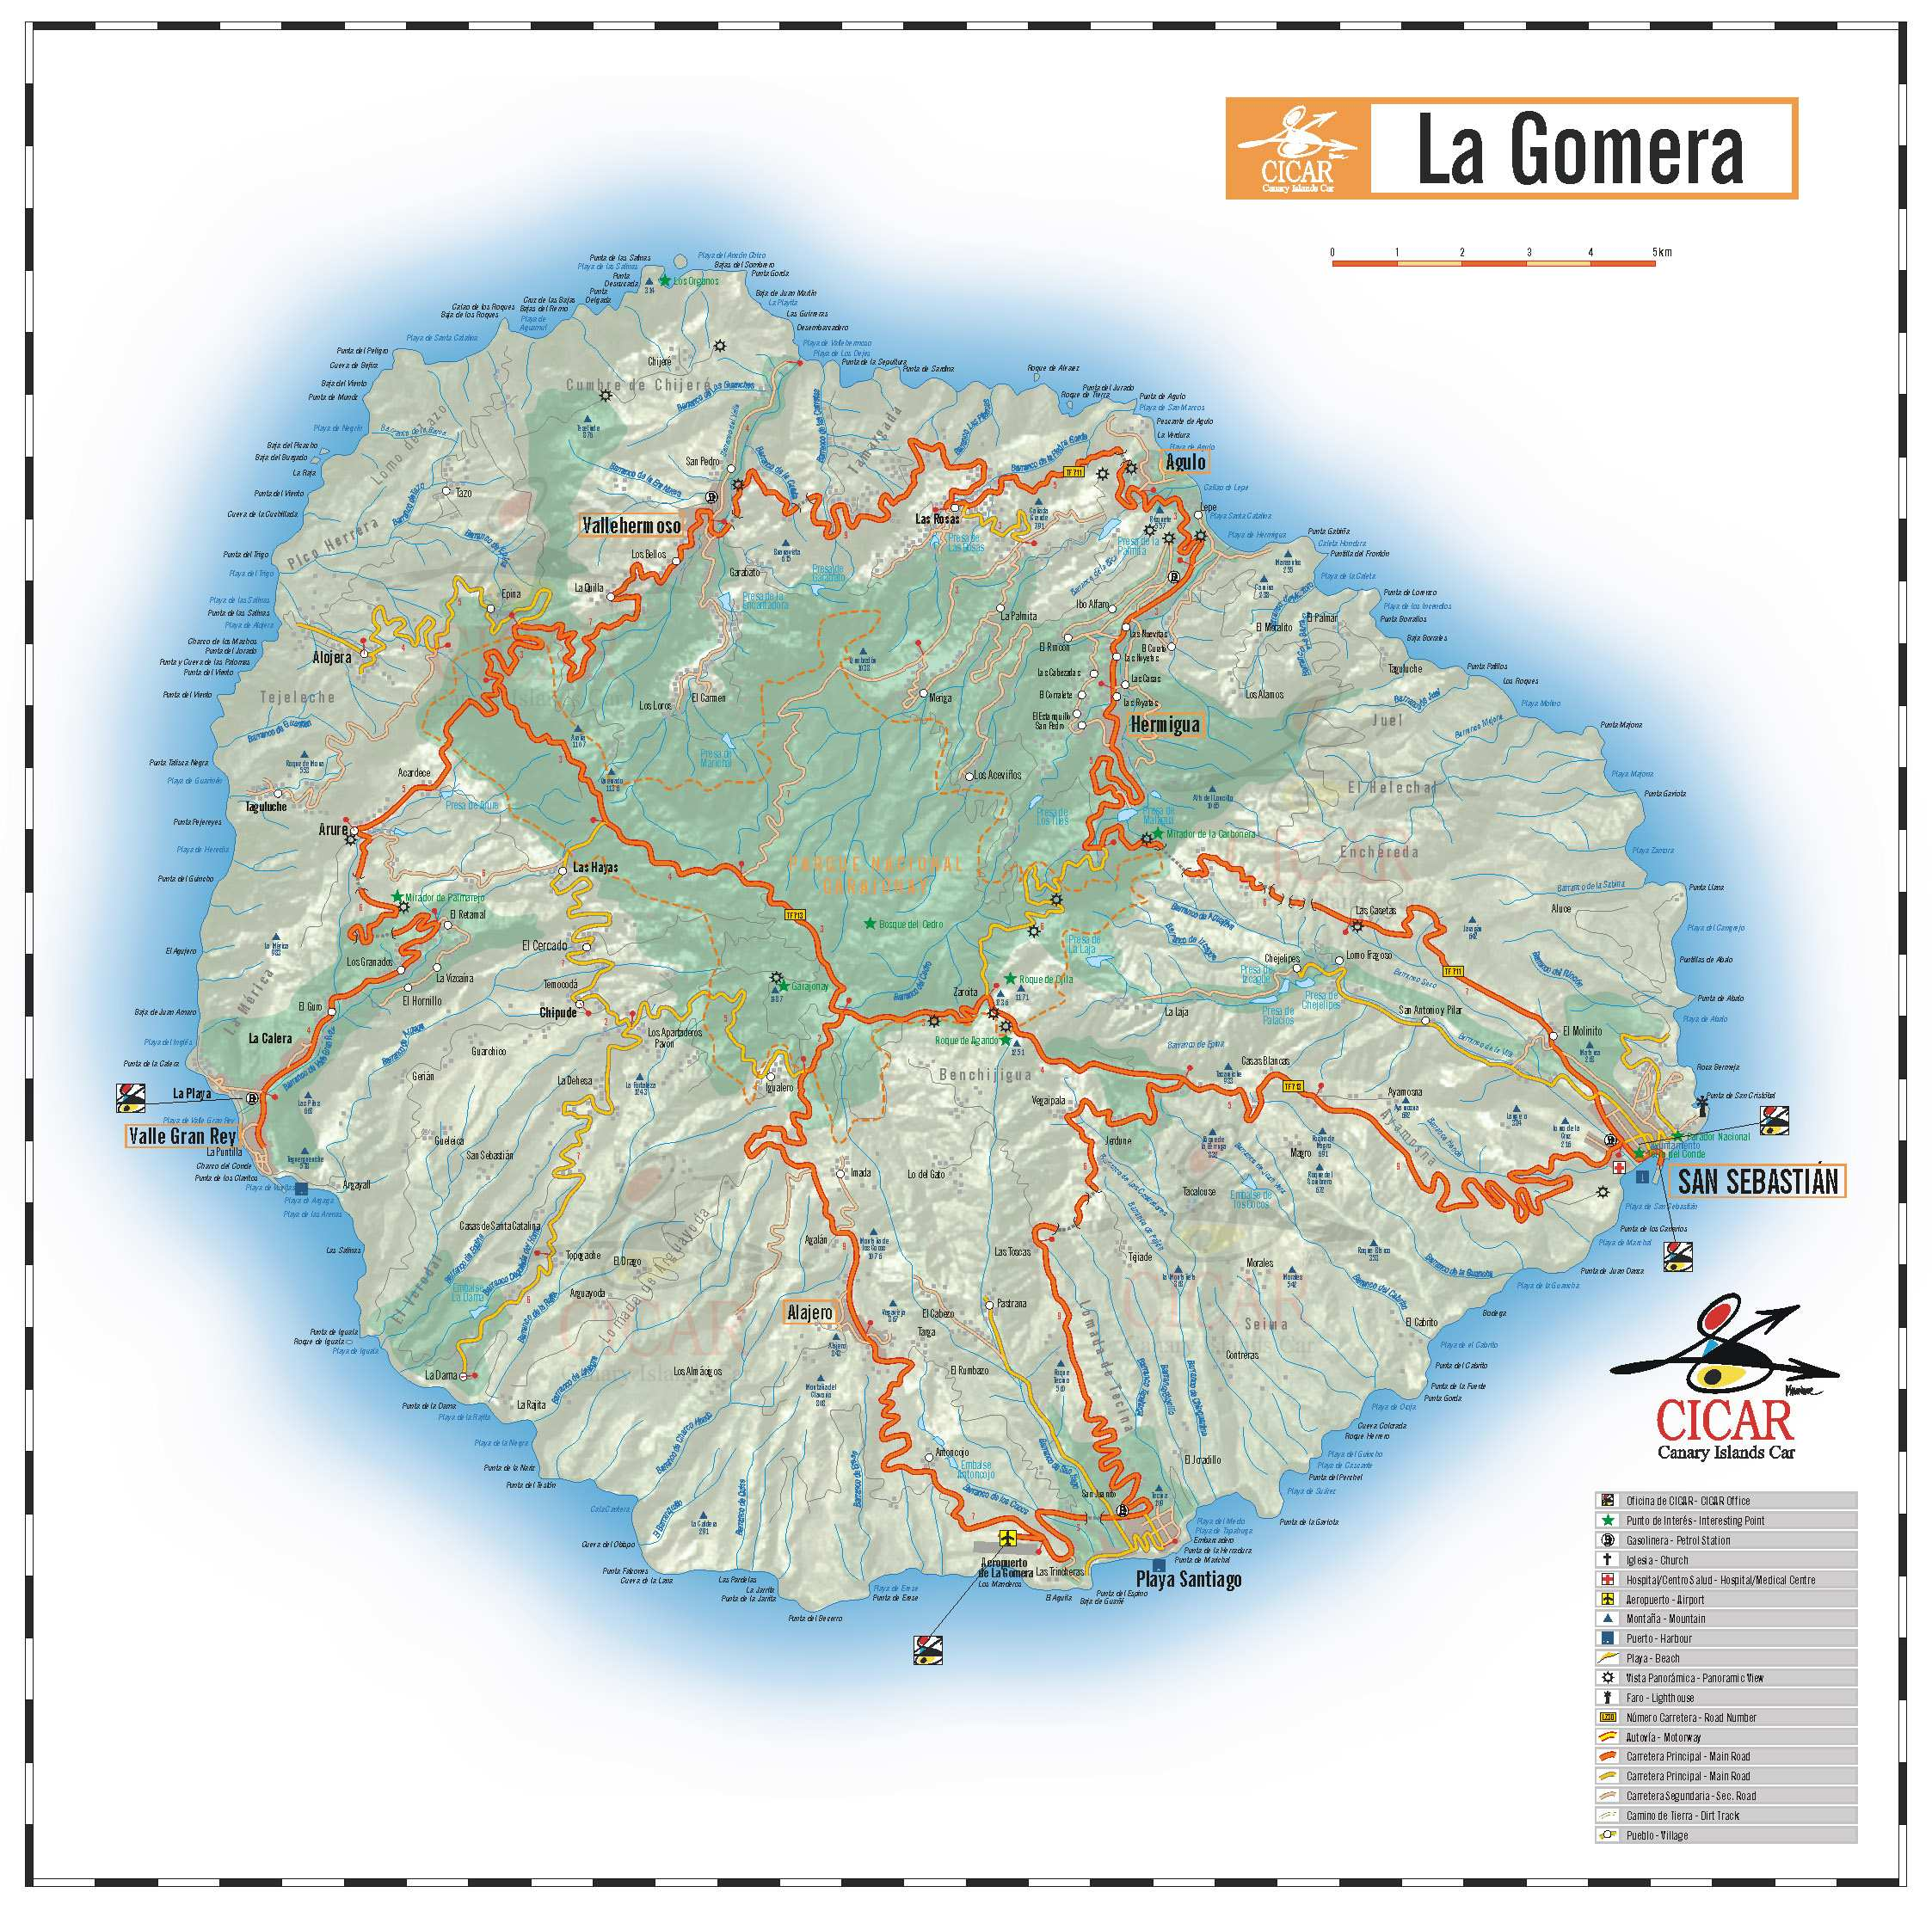 la gomera karte Large La Gomera Maps for Free Download and Print | High Resolution